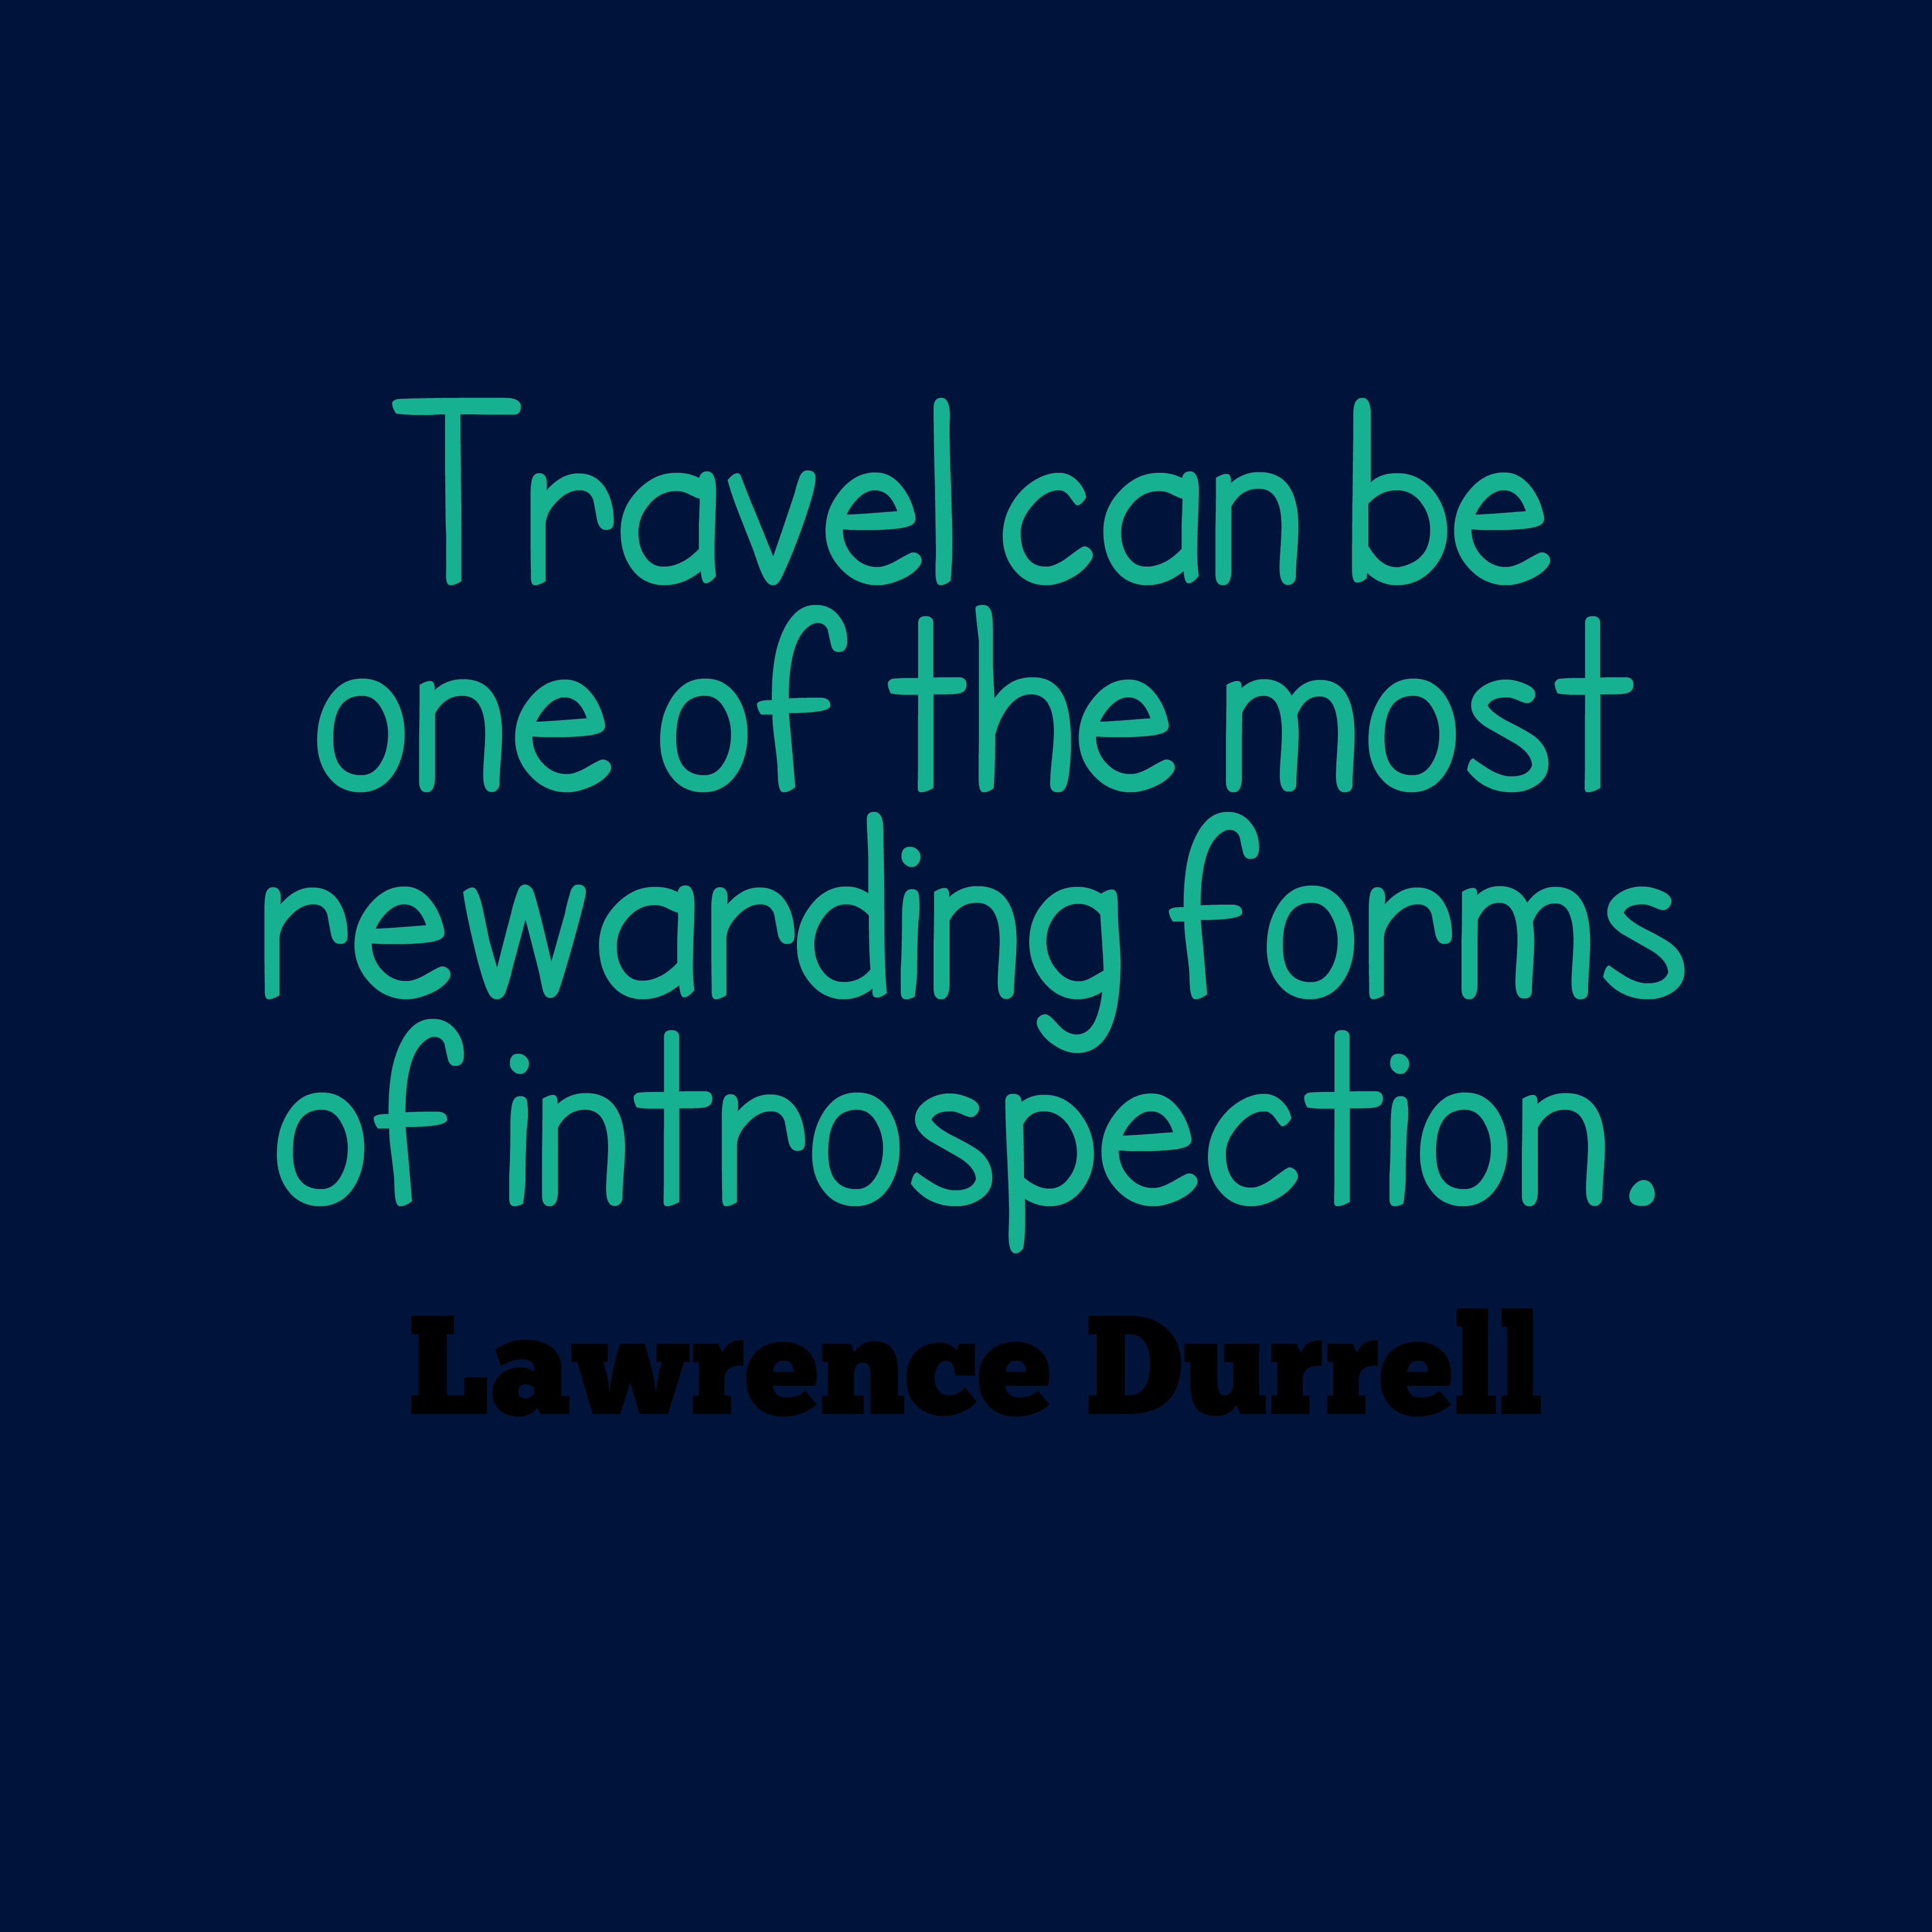 Quotes image of Travel can be one of the most rewarding forms of introspection.